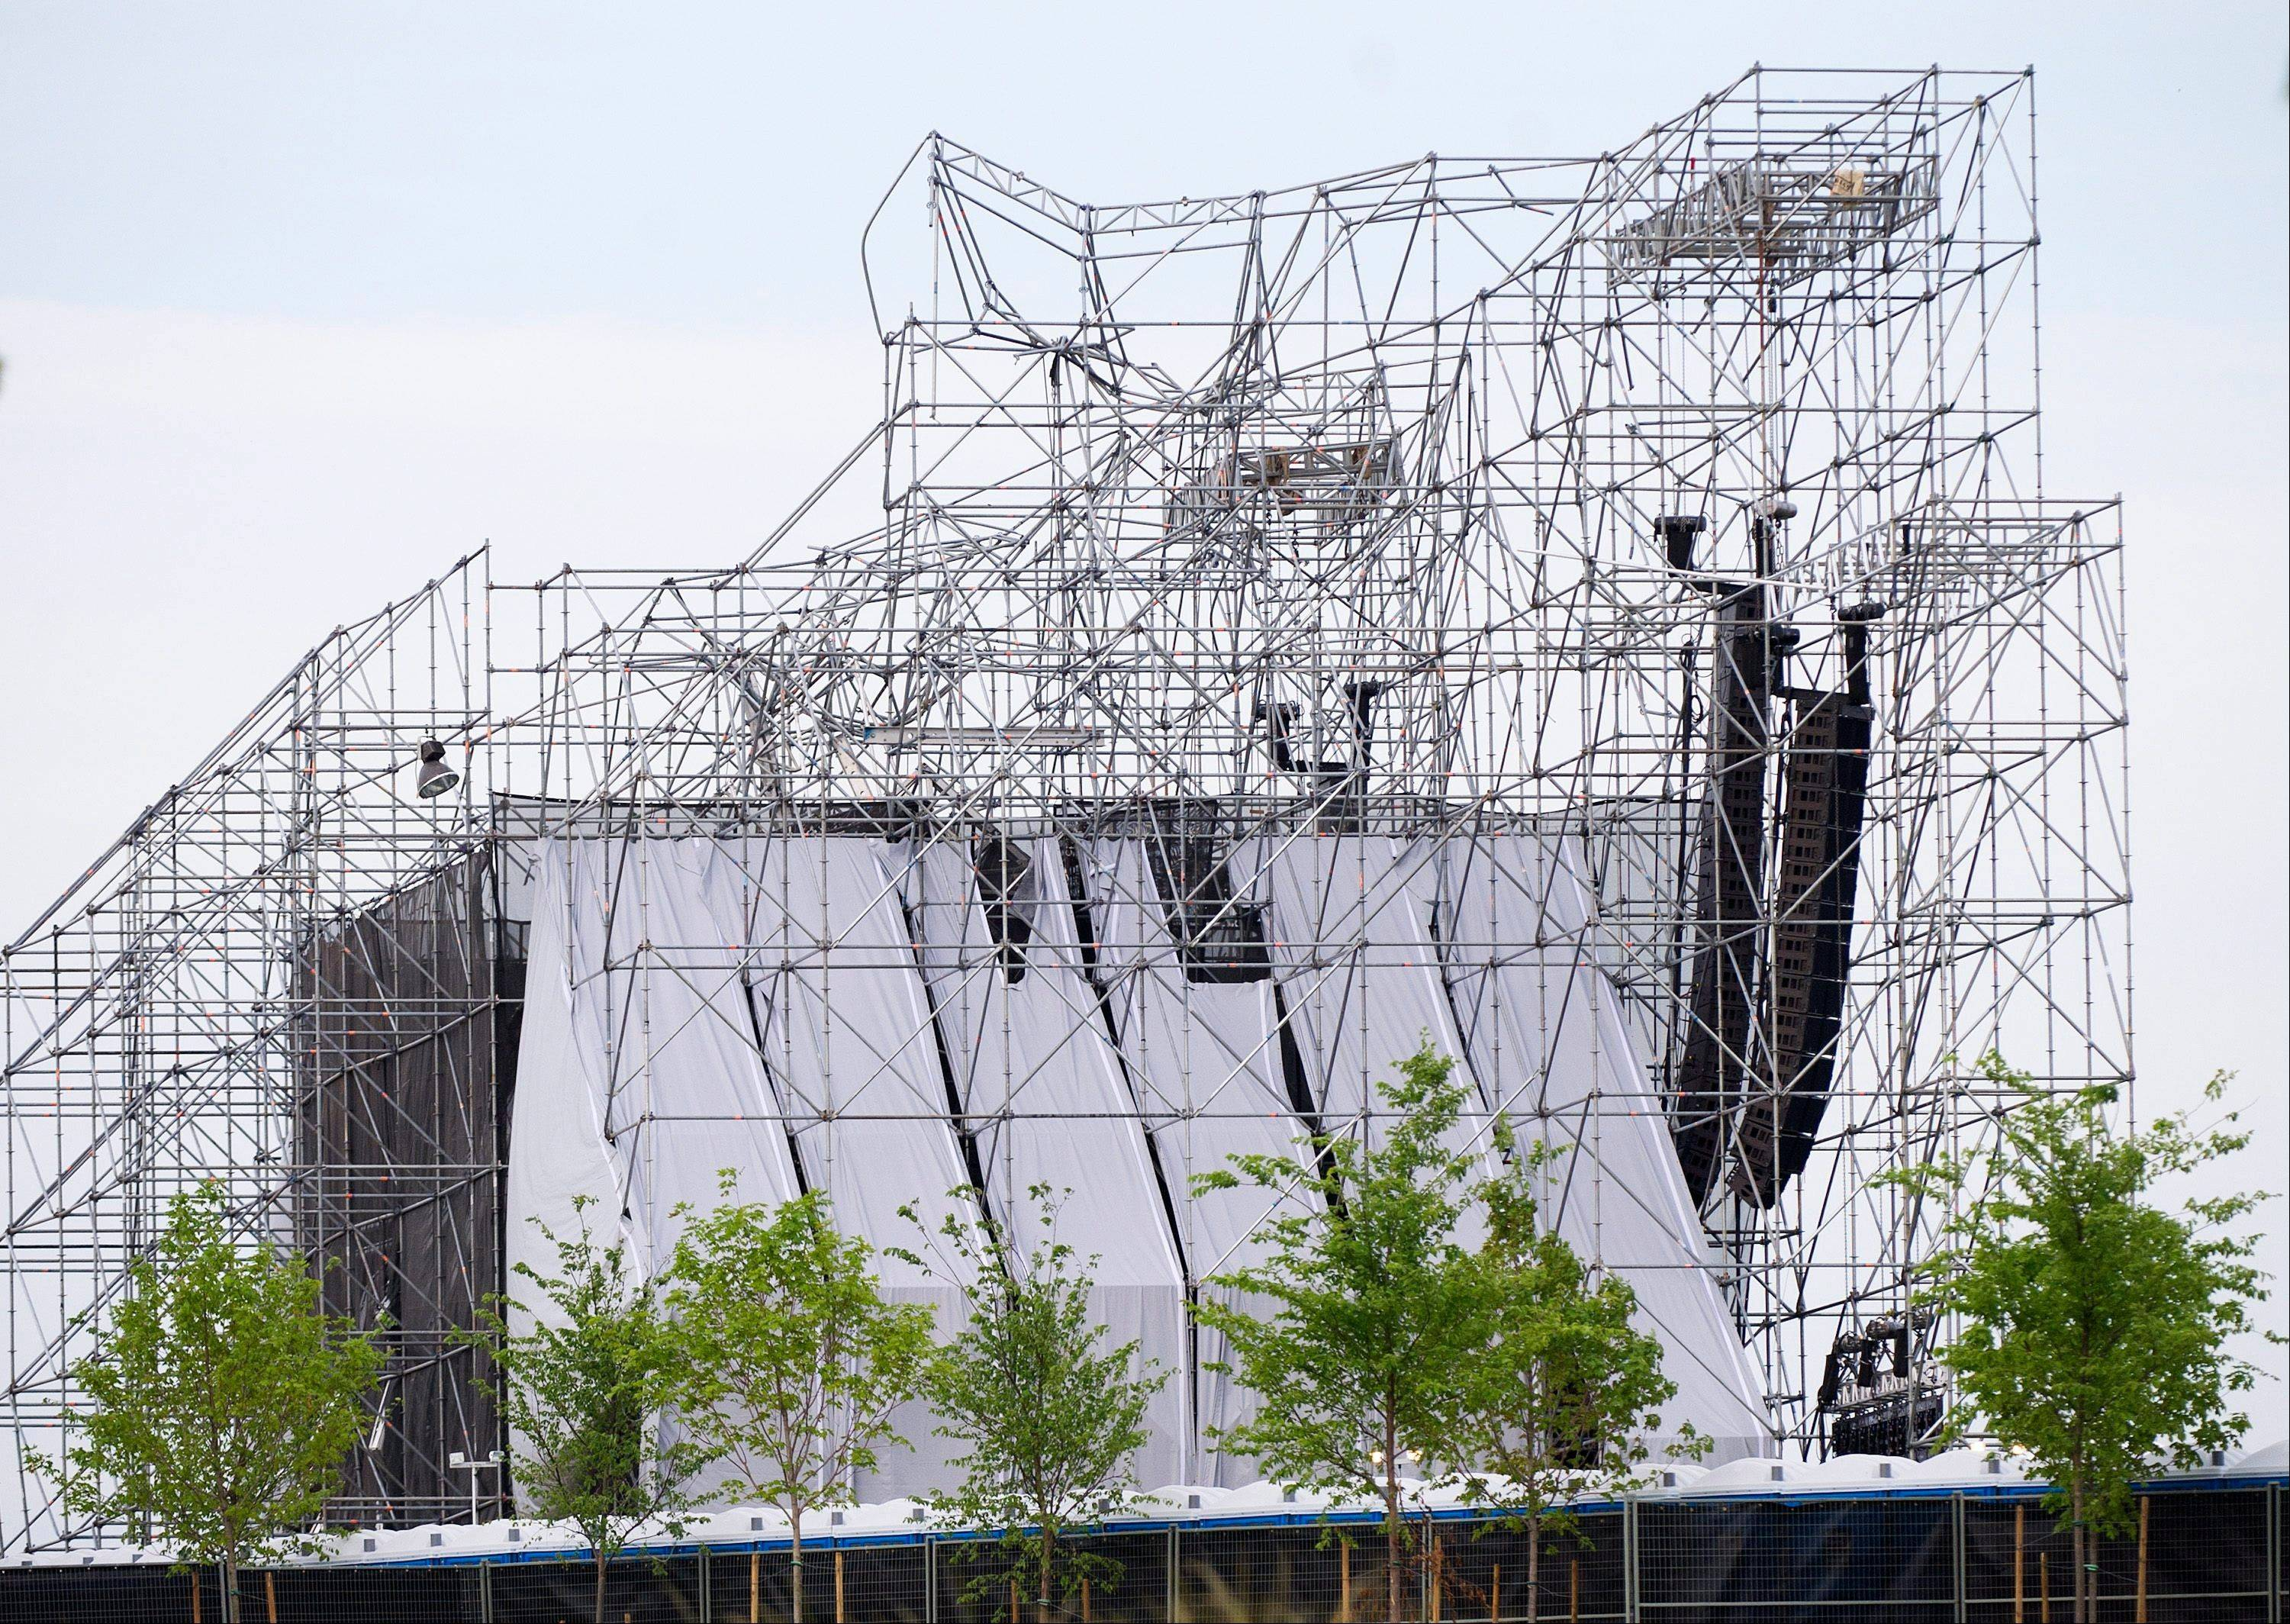 A stage intended for a Radiohead concert is collapsed at Downsview Park in Toronto on Saturday, June 16, 2012. Toronto paramedics say one person is dead and another is seriously hurt after the stage collapsed while setting up for a Radiohead concert. They say two other people were injured and are being assessed.